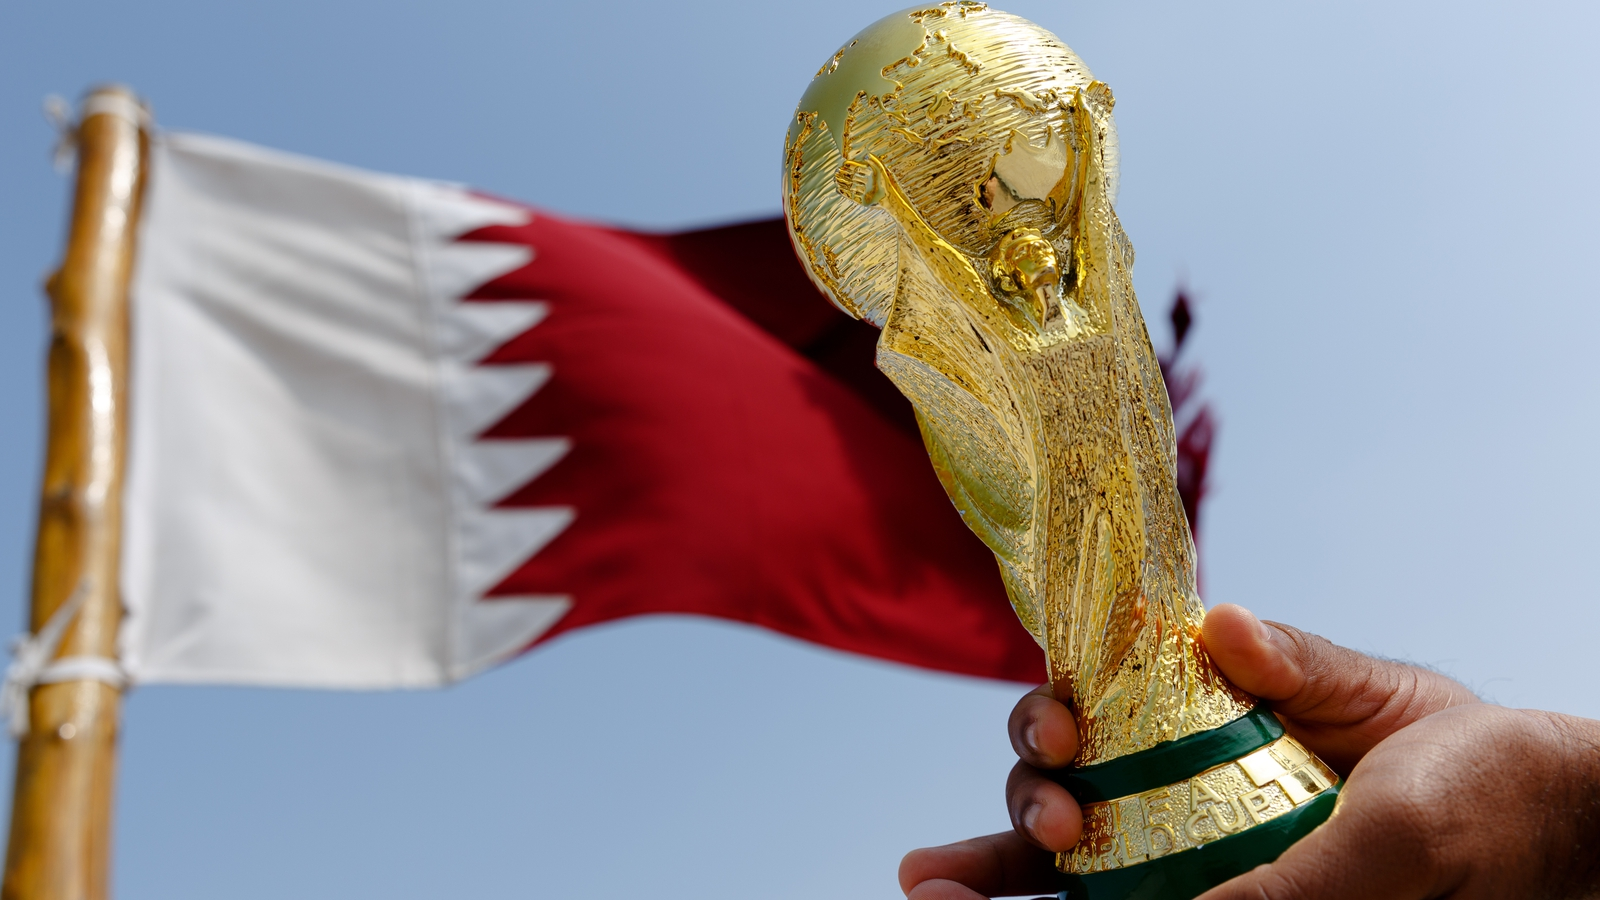 FIFA urged to make sure Qatar implements labour reforms